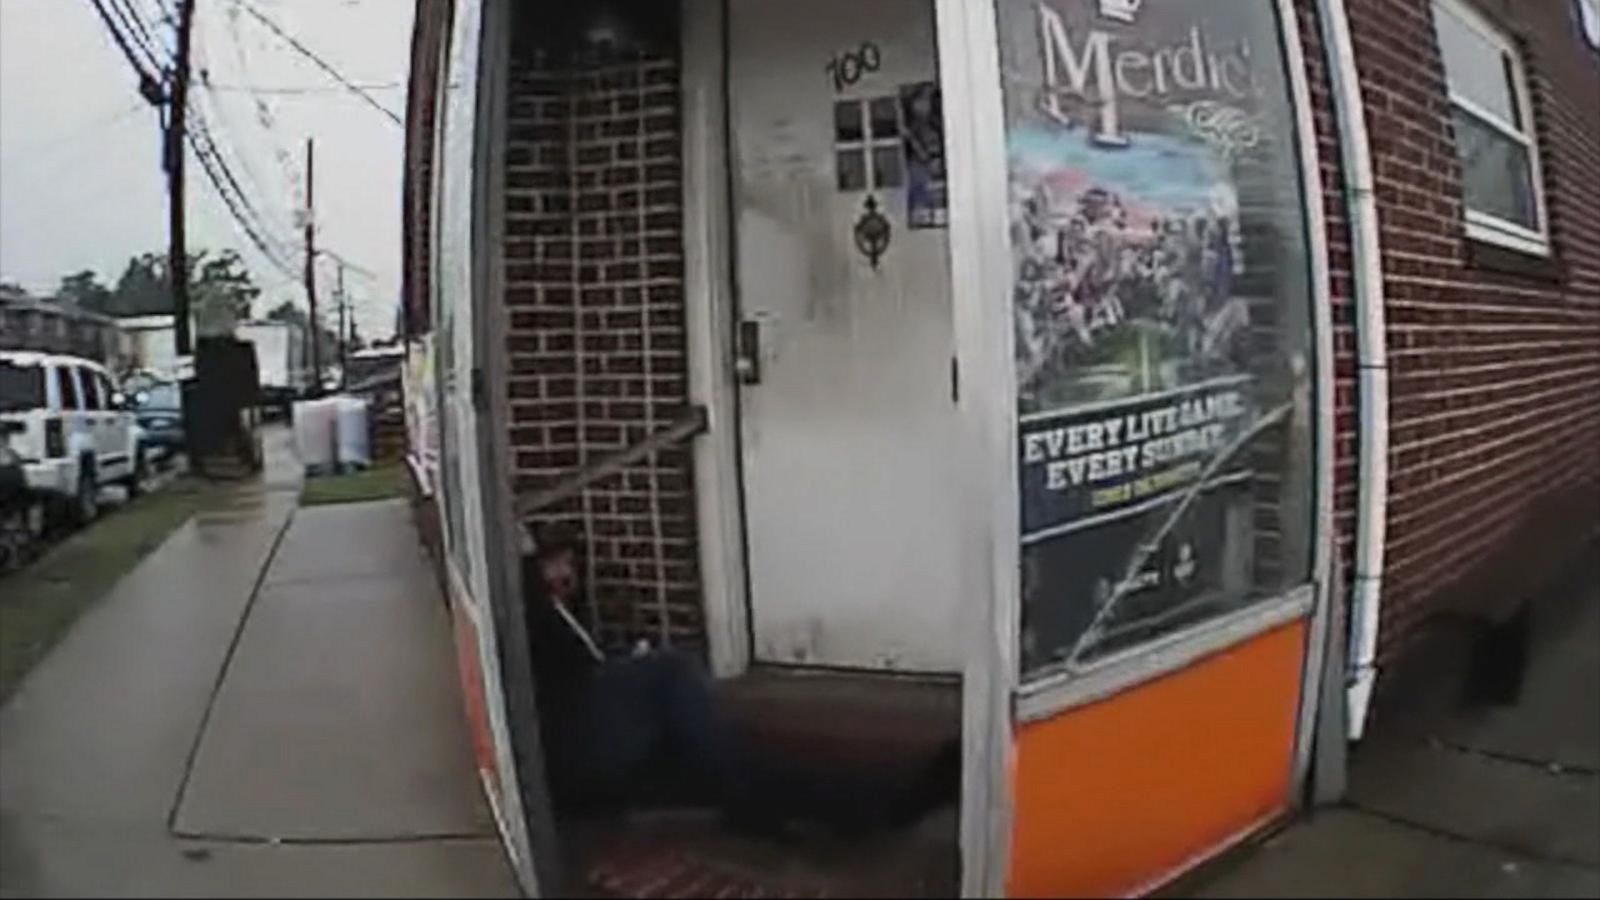 VIDEO: Body-Cam Footage Reveals Police Interaction With Suspected Chelsea Bomber